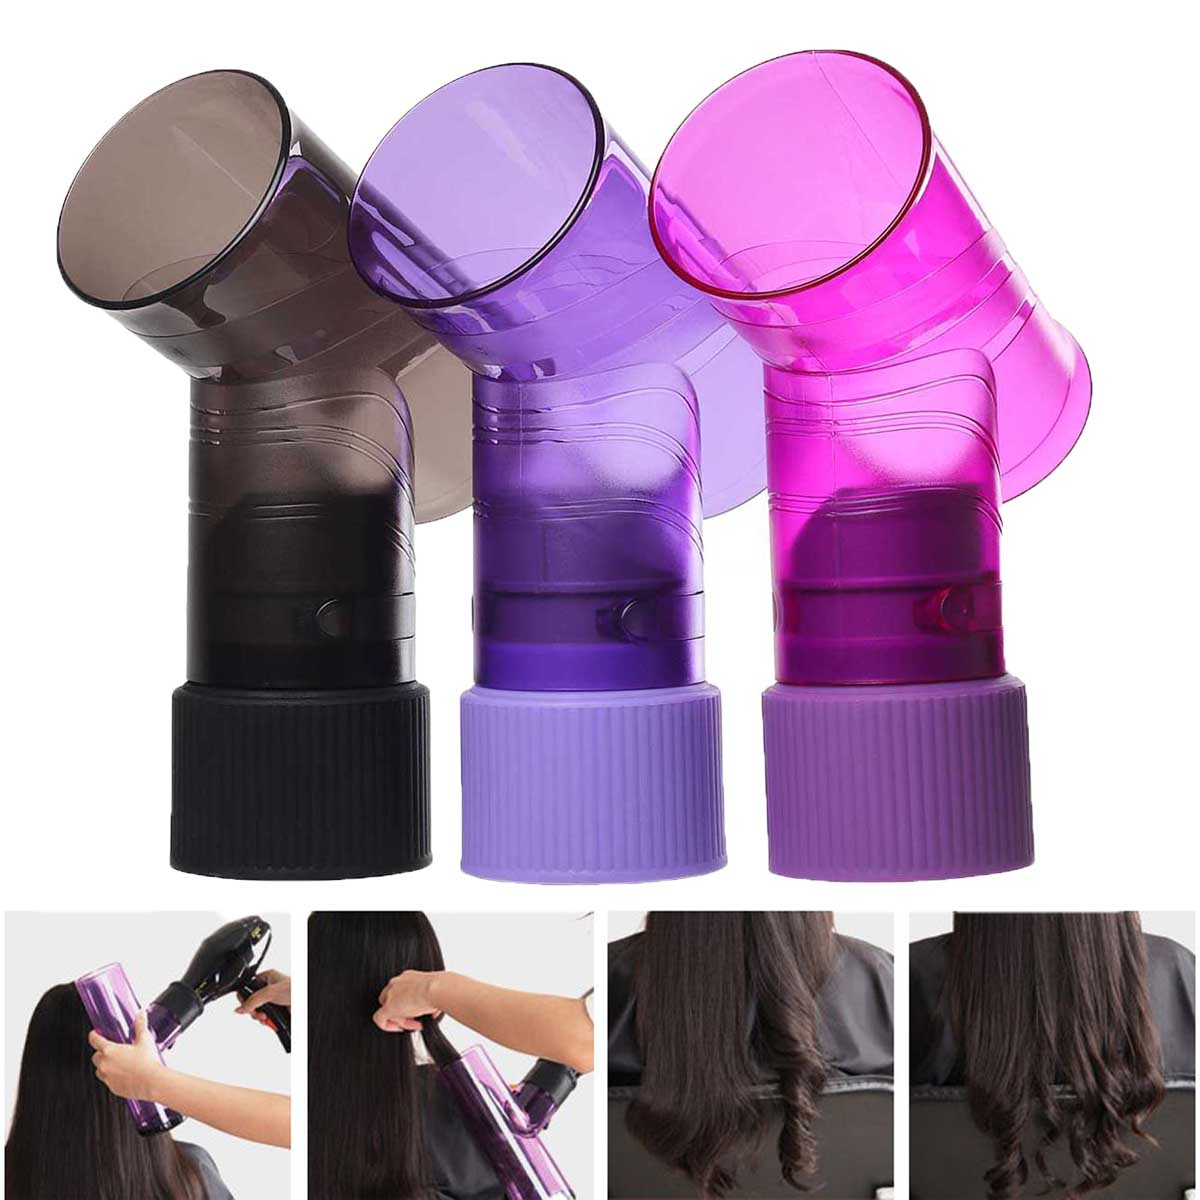 3 Colors Hair Dryer Diffuser Magic Wind Spin Portable Blow Dryer Roller Curler Maker Professional Salon Hairstyling Tool цена 2017